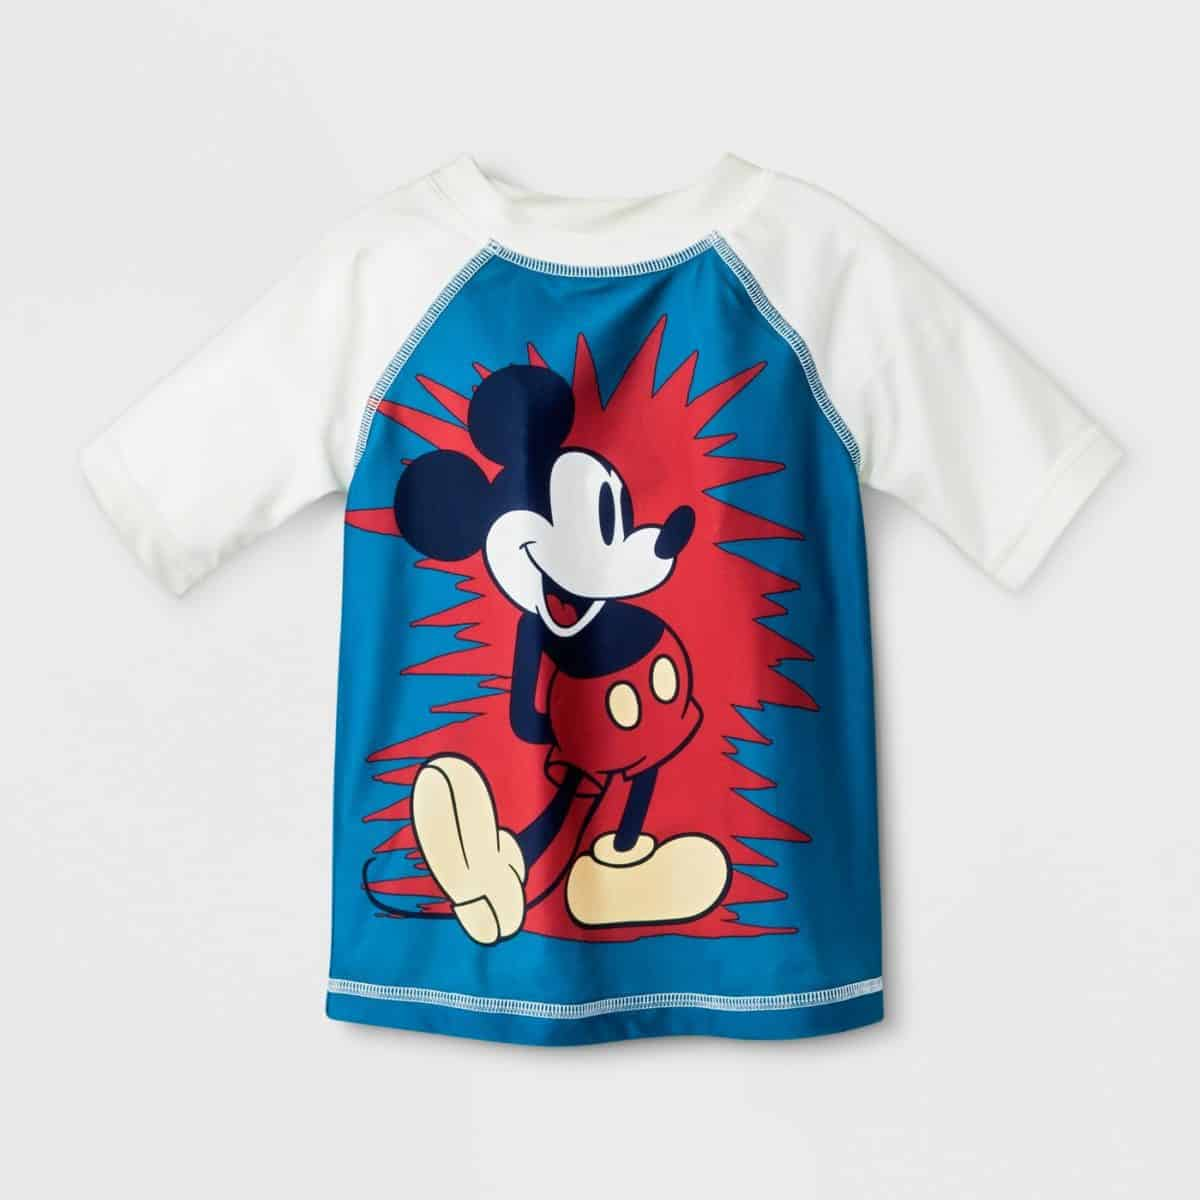 Junk Food toddler shirt Mickey Mouse.